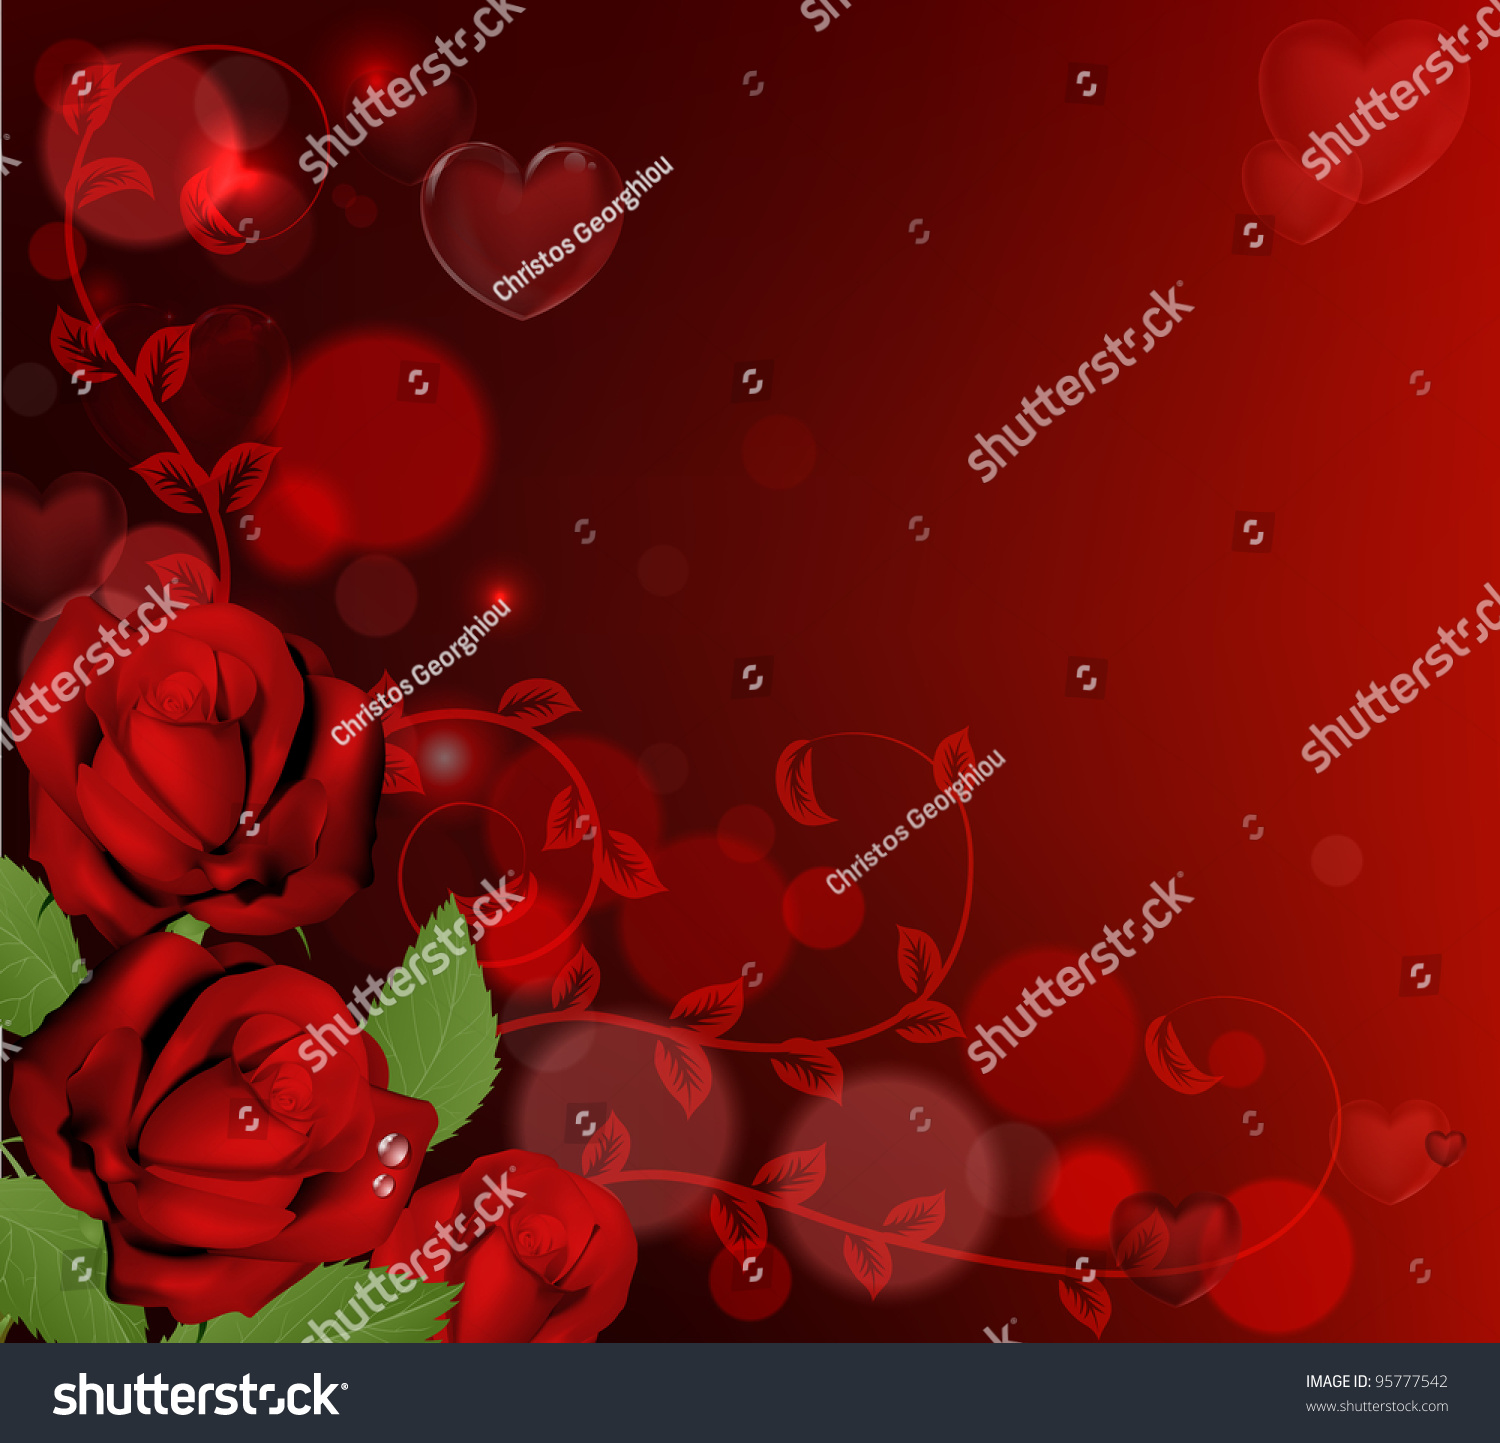 Red Valentines Day Background Heart Shaped Stock Vector 95777542 ...